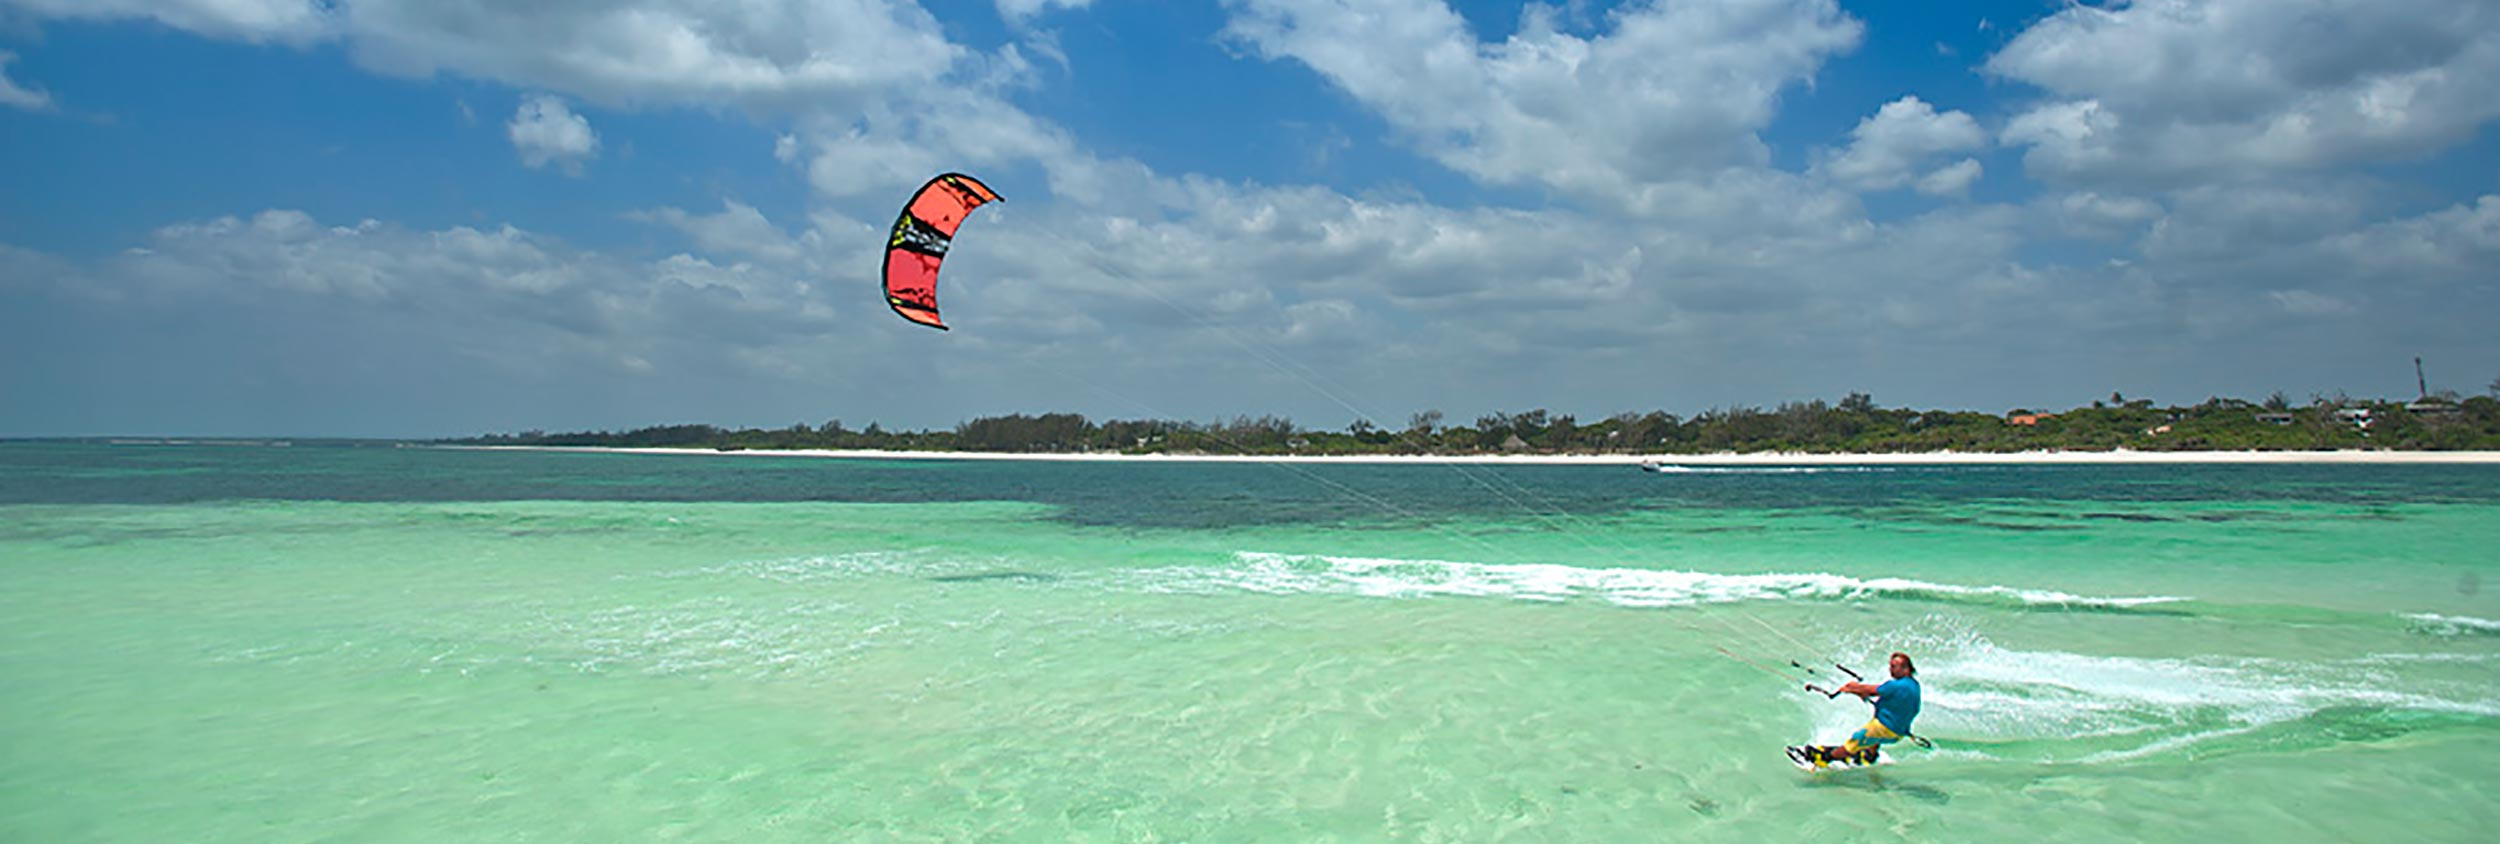 Fare kitesurf a Watamu Beach in Kenya